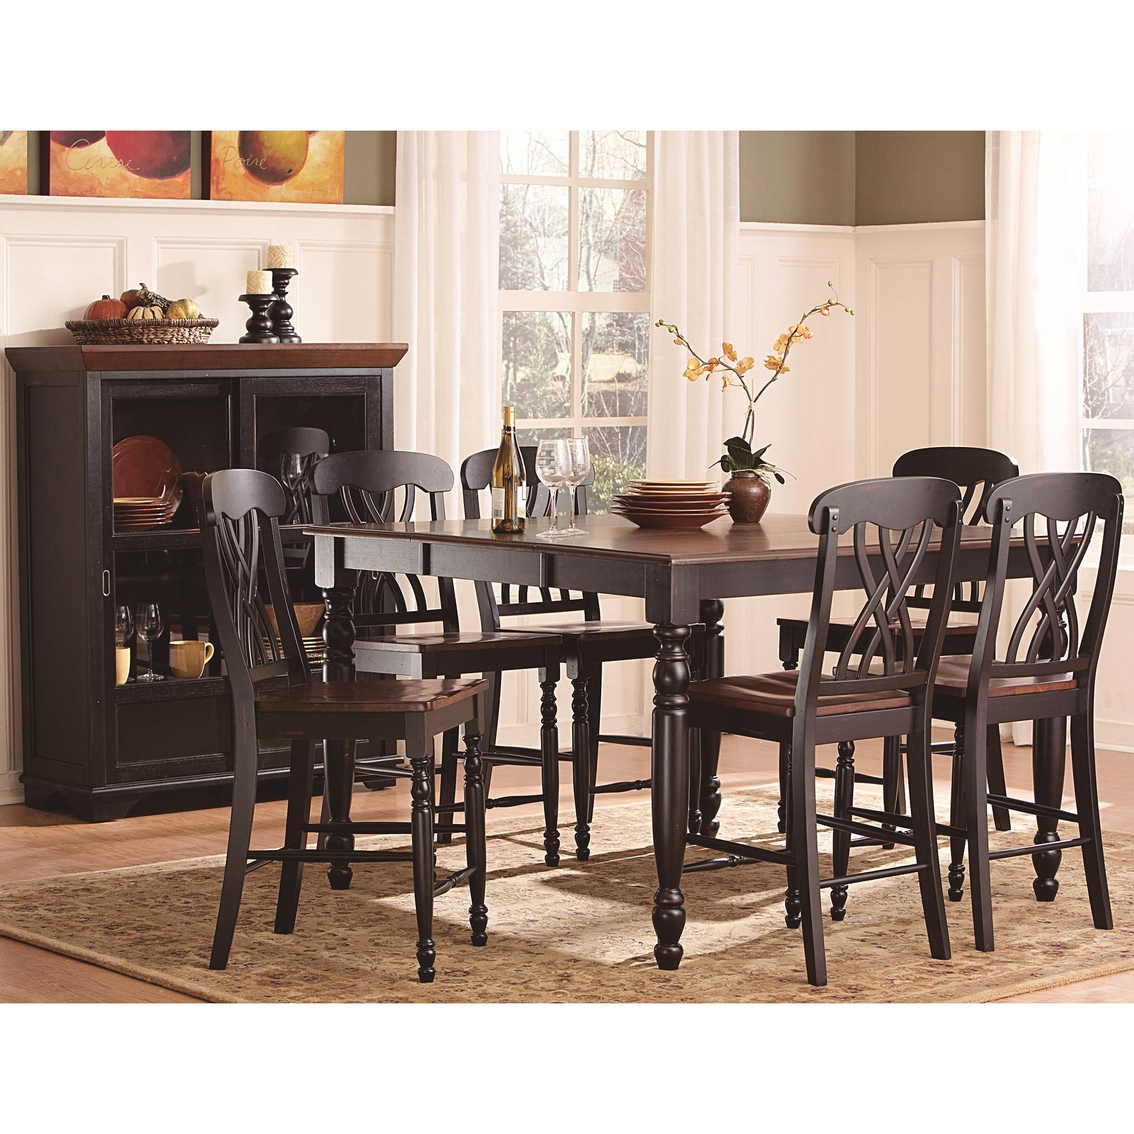 Homelegance Ohana 5 Pc Counter Height Dining Set Dining Sets